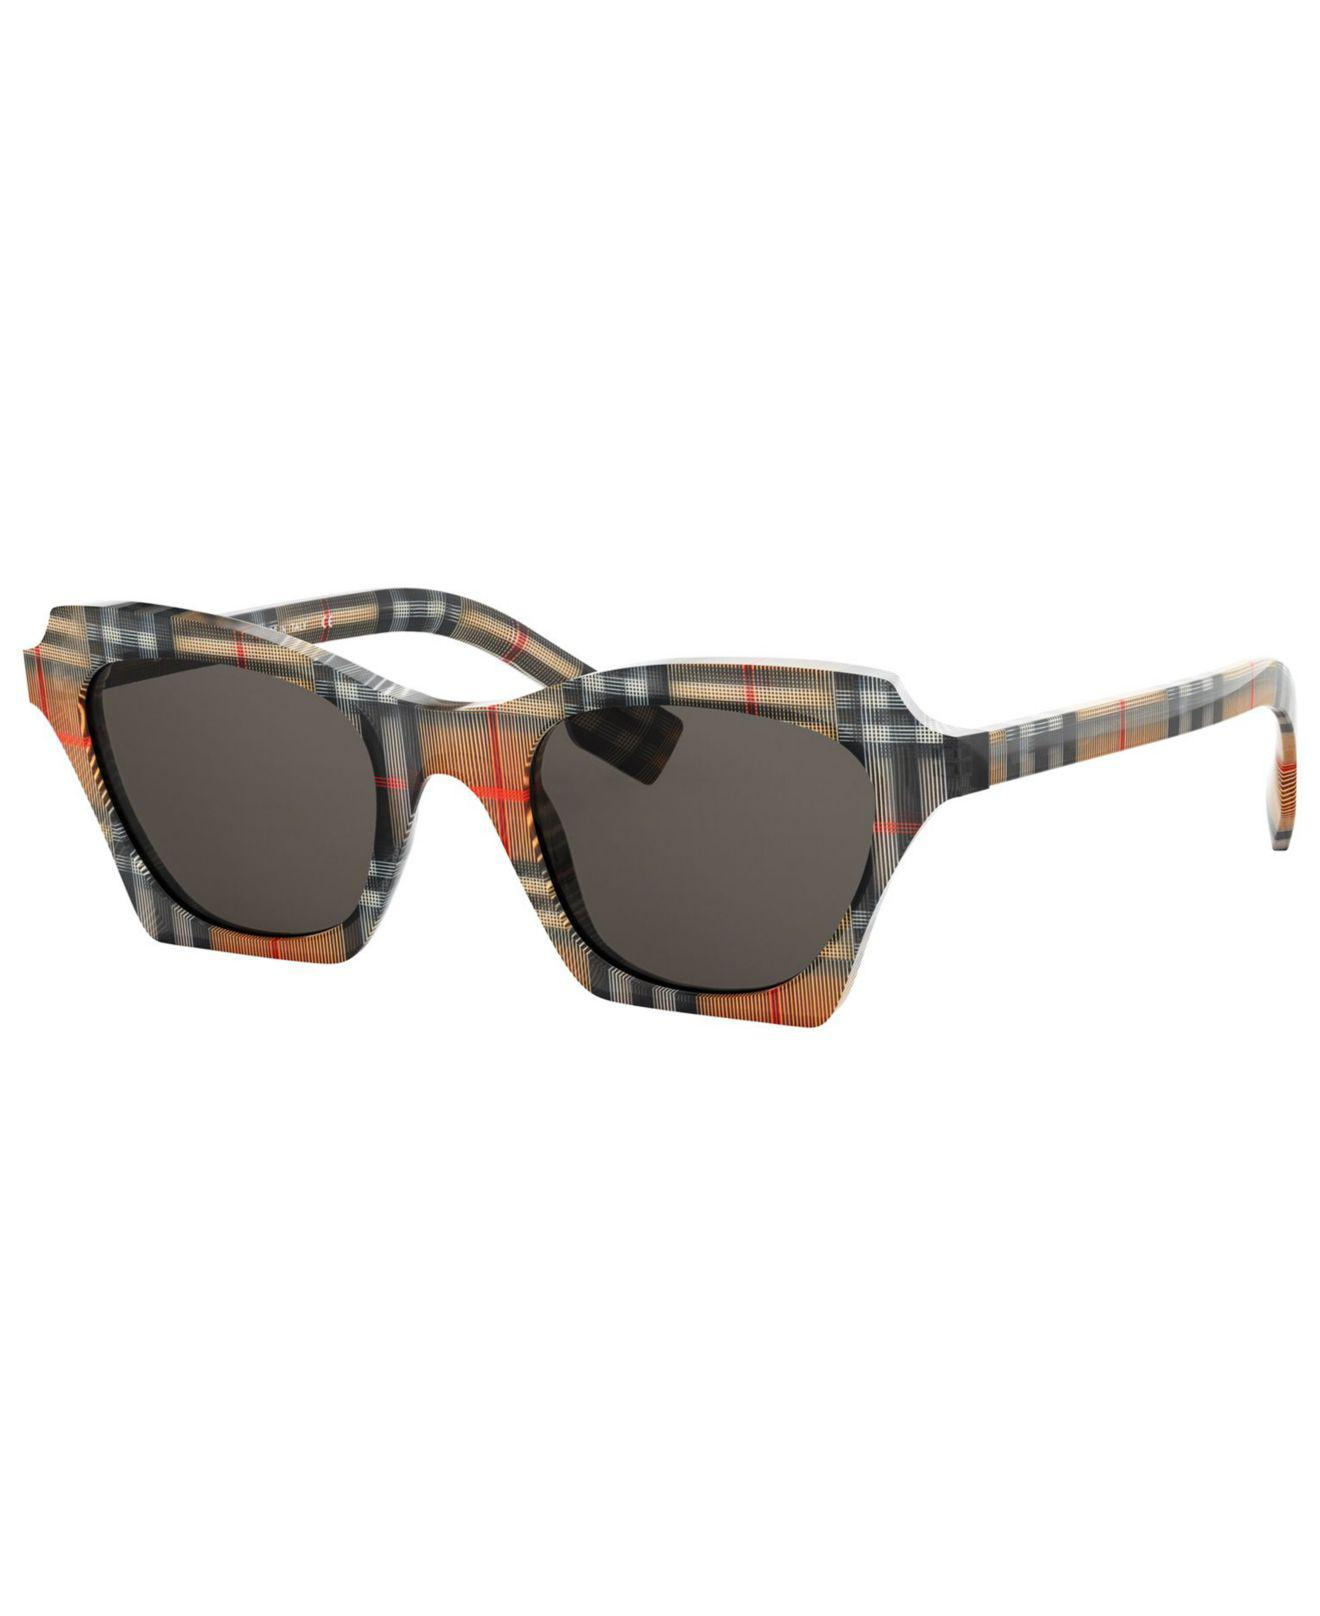 173dc21e2365 Lyst - Burberry 49mm in Brown